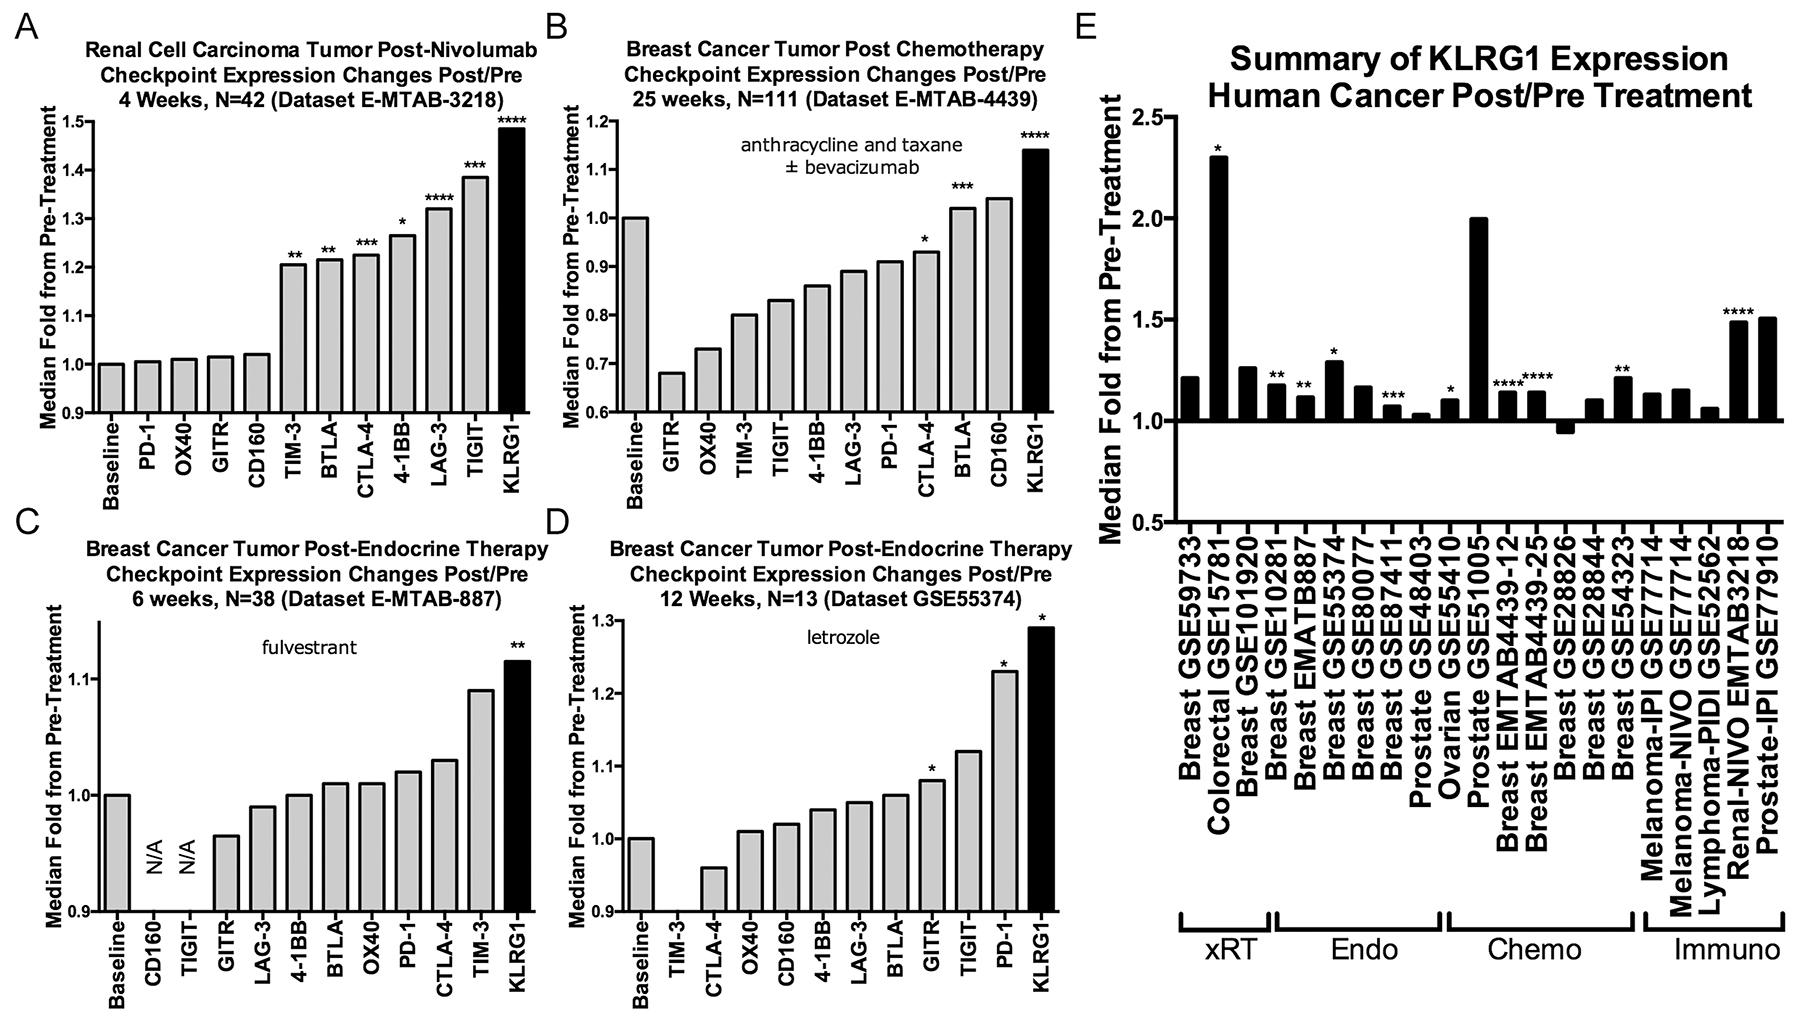 Effect of cancer treatments on KLRG1 and other checkpoint receptor expression in human cancer pre- and post-treatment tumor biopsy public domain datasets.